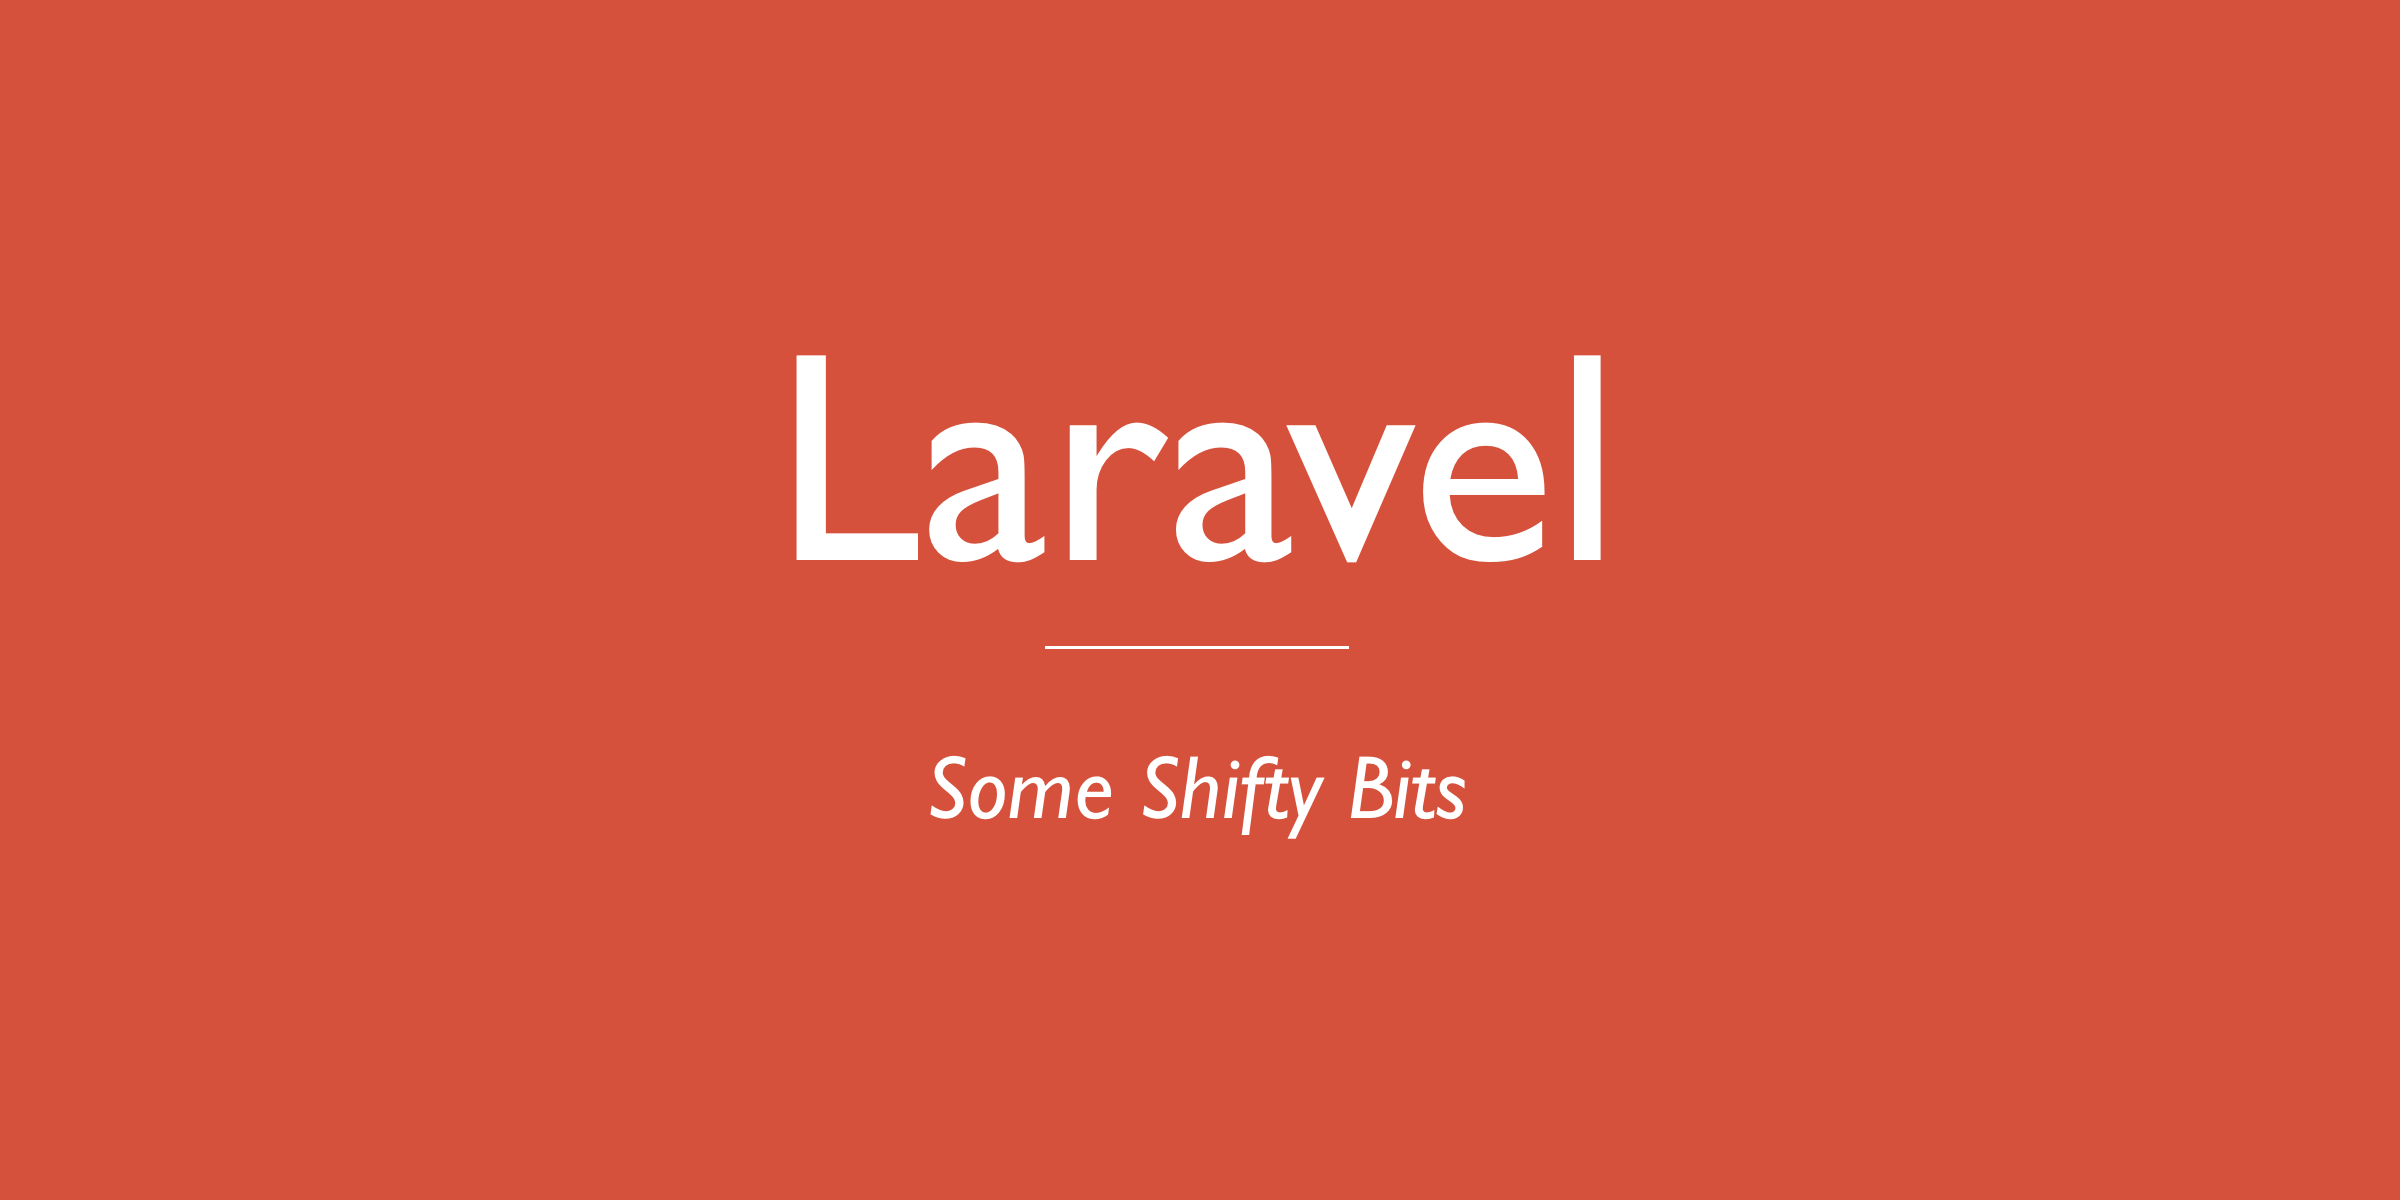 Laravel - Some Shifty Bits